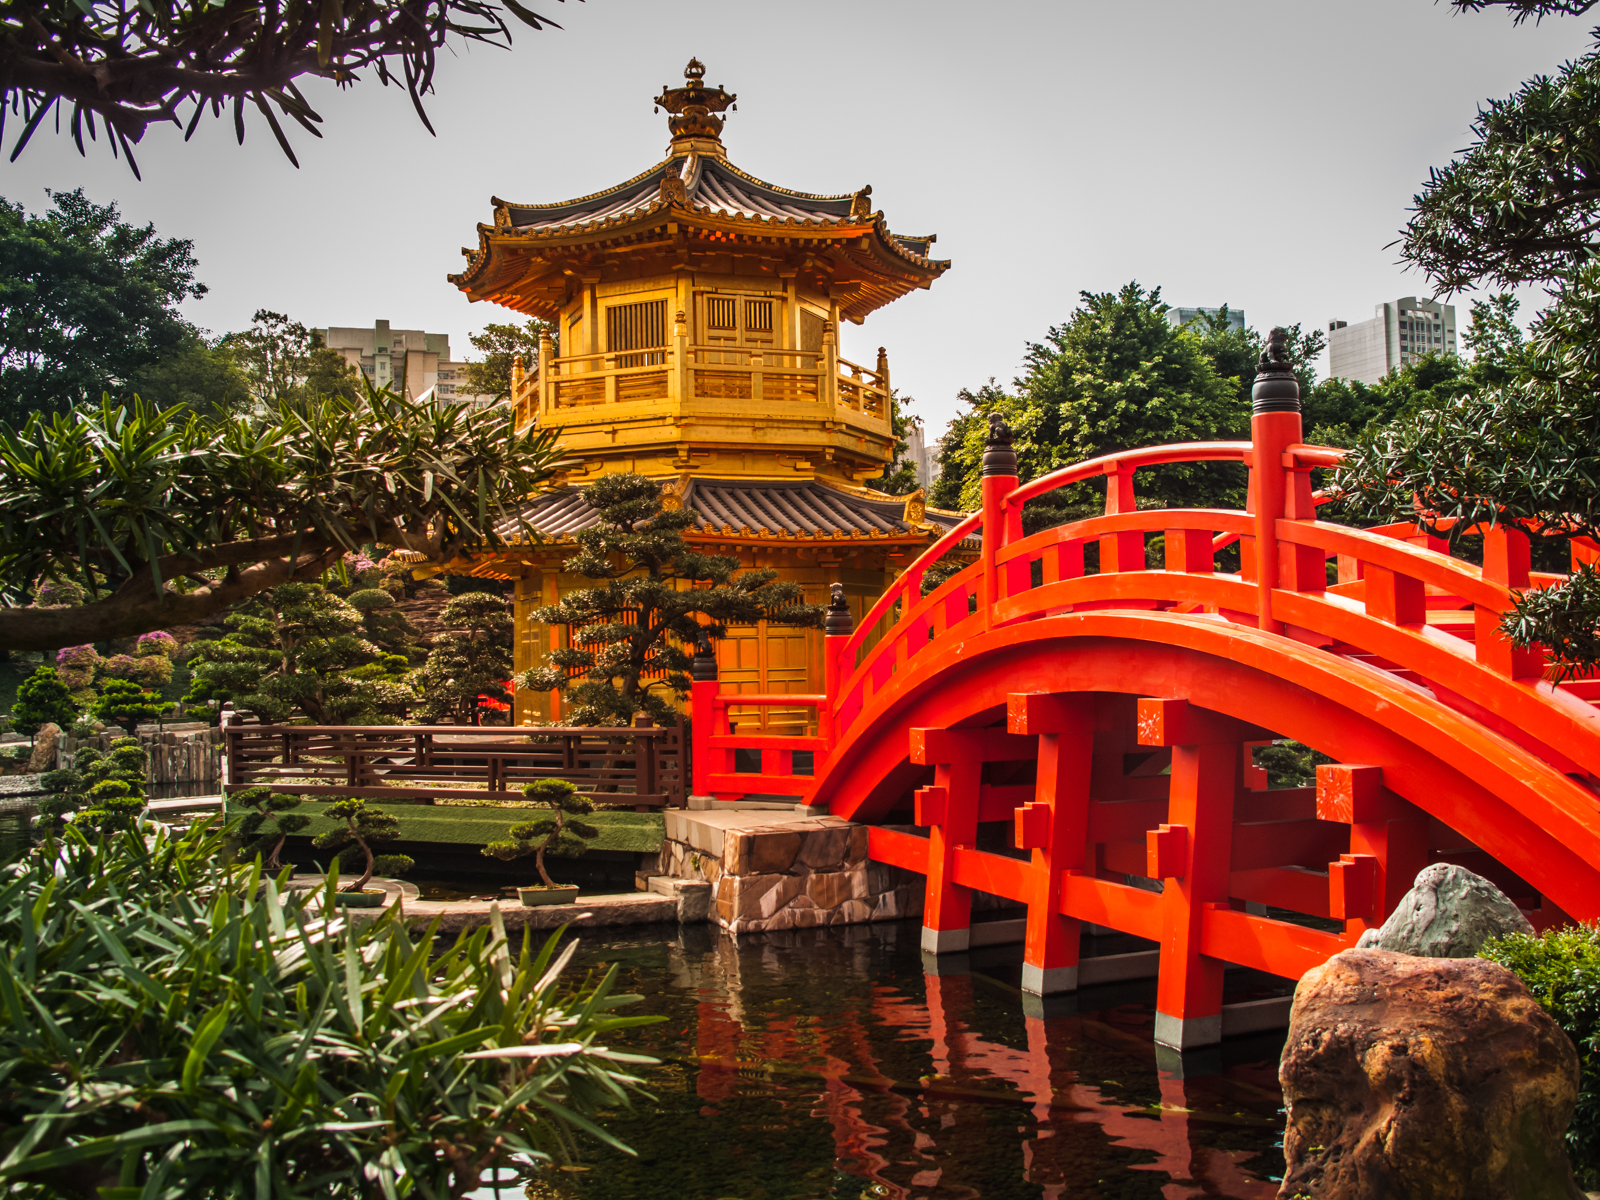 Chi Lin Nunnery bridge and pagoda